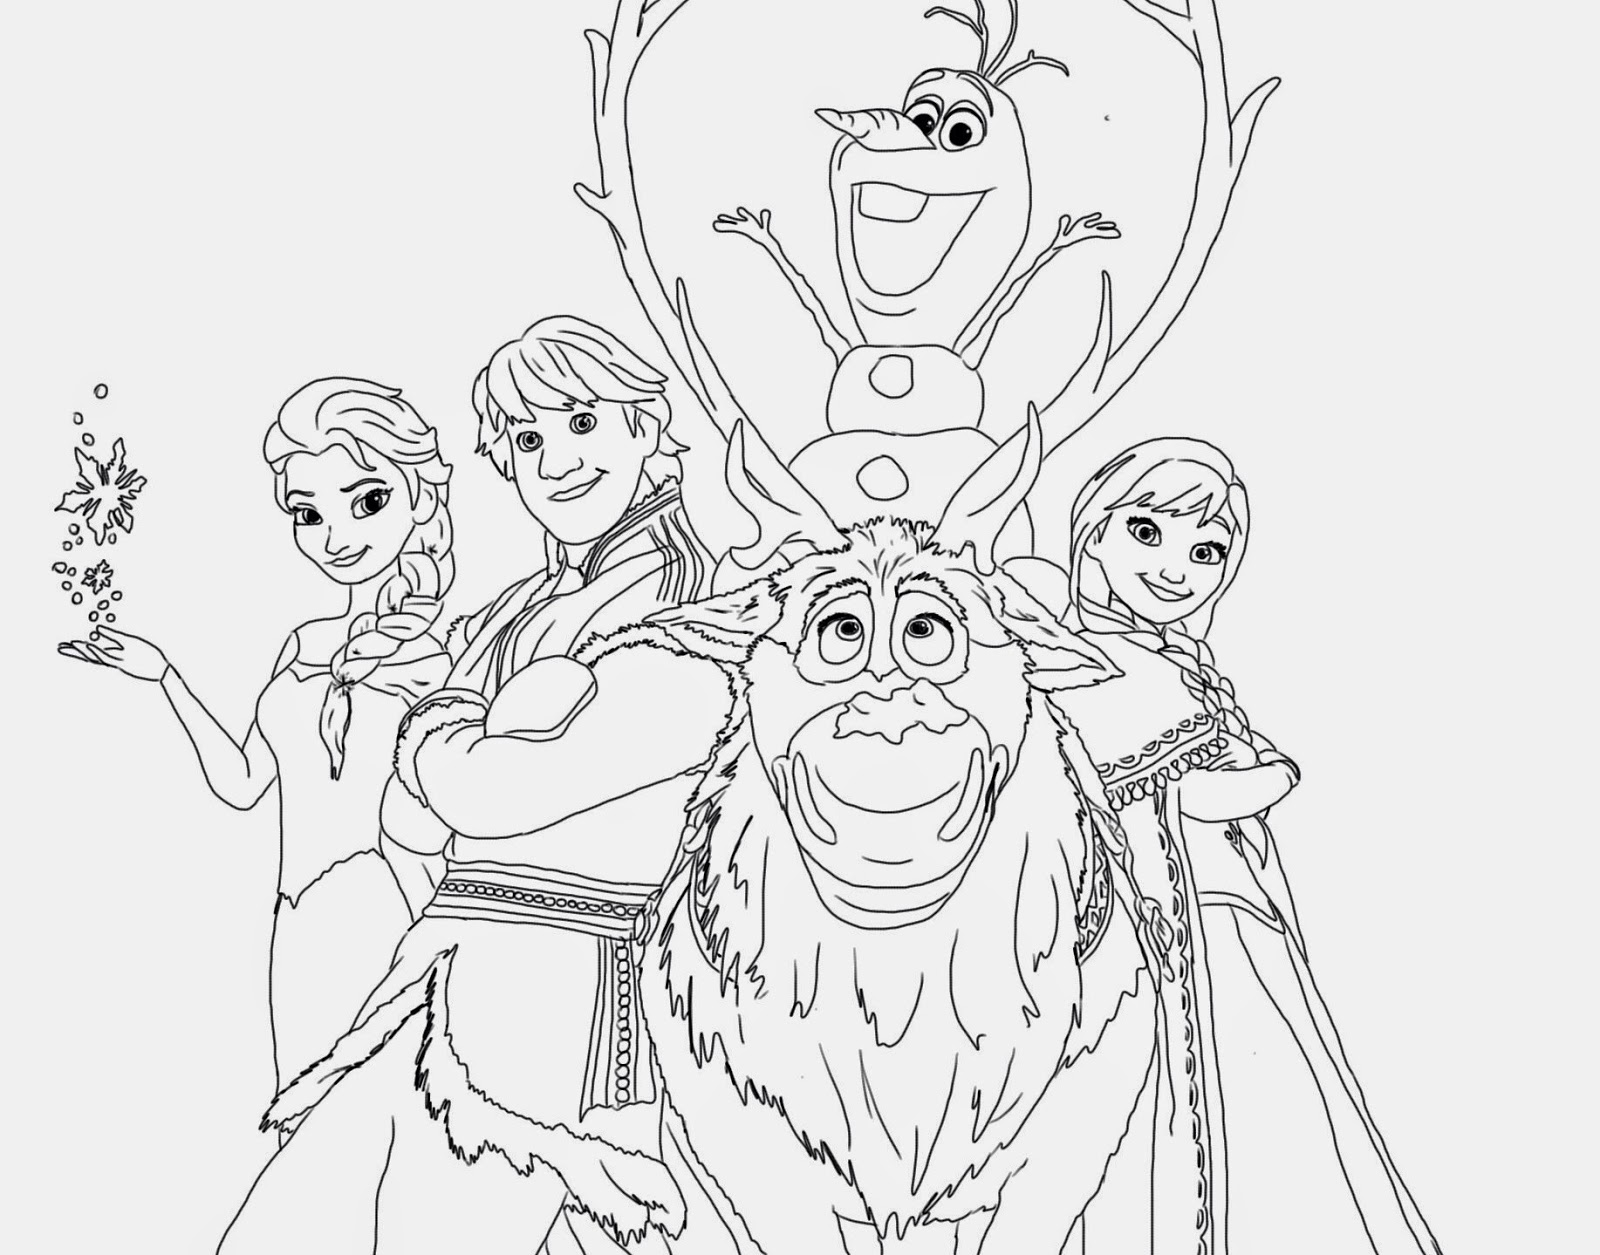 Disney Princess Colouring Official Disney Princess Site  - print out coloring pages disney